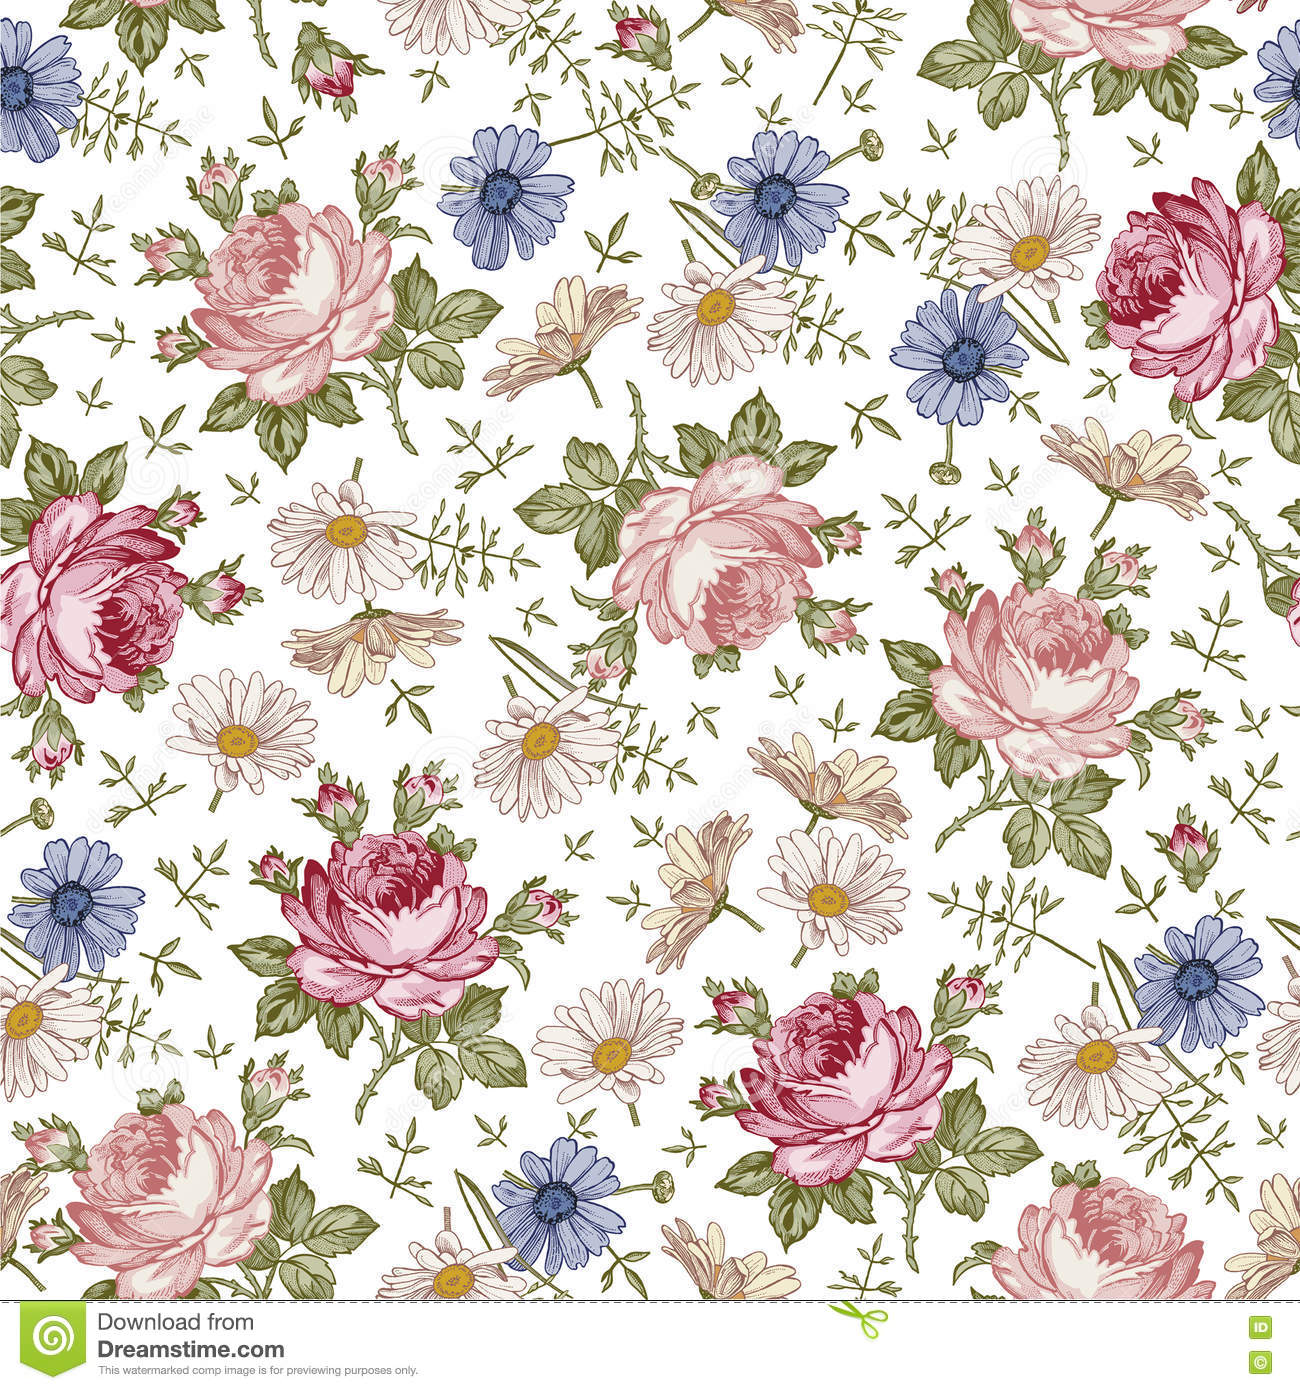 Seamless pattern realistic isolated flowers vintage for Tapete schwarz muster